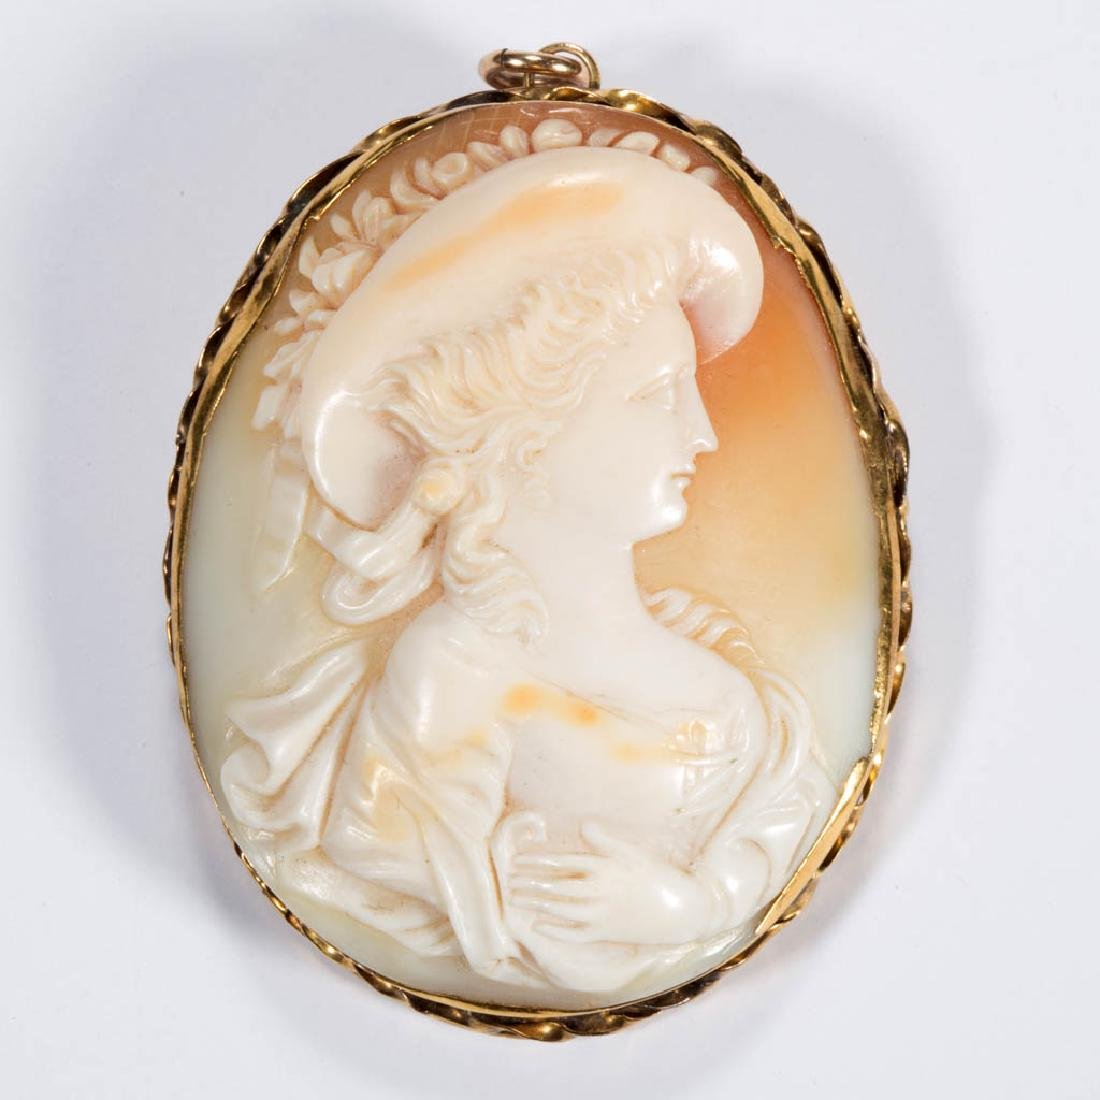 ANTIQUE 14K GOLD AND CARVED CAMEO BROOCH